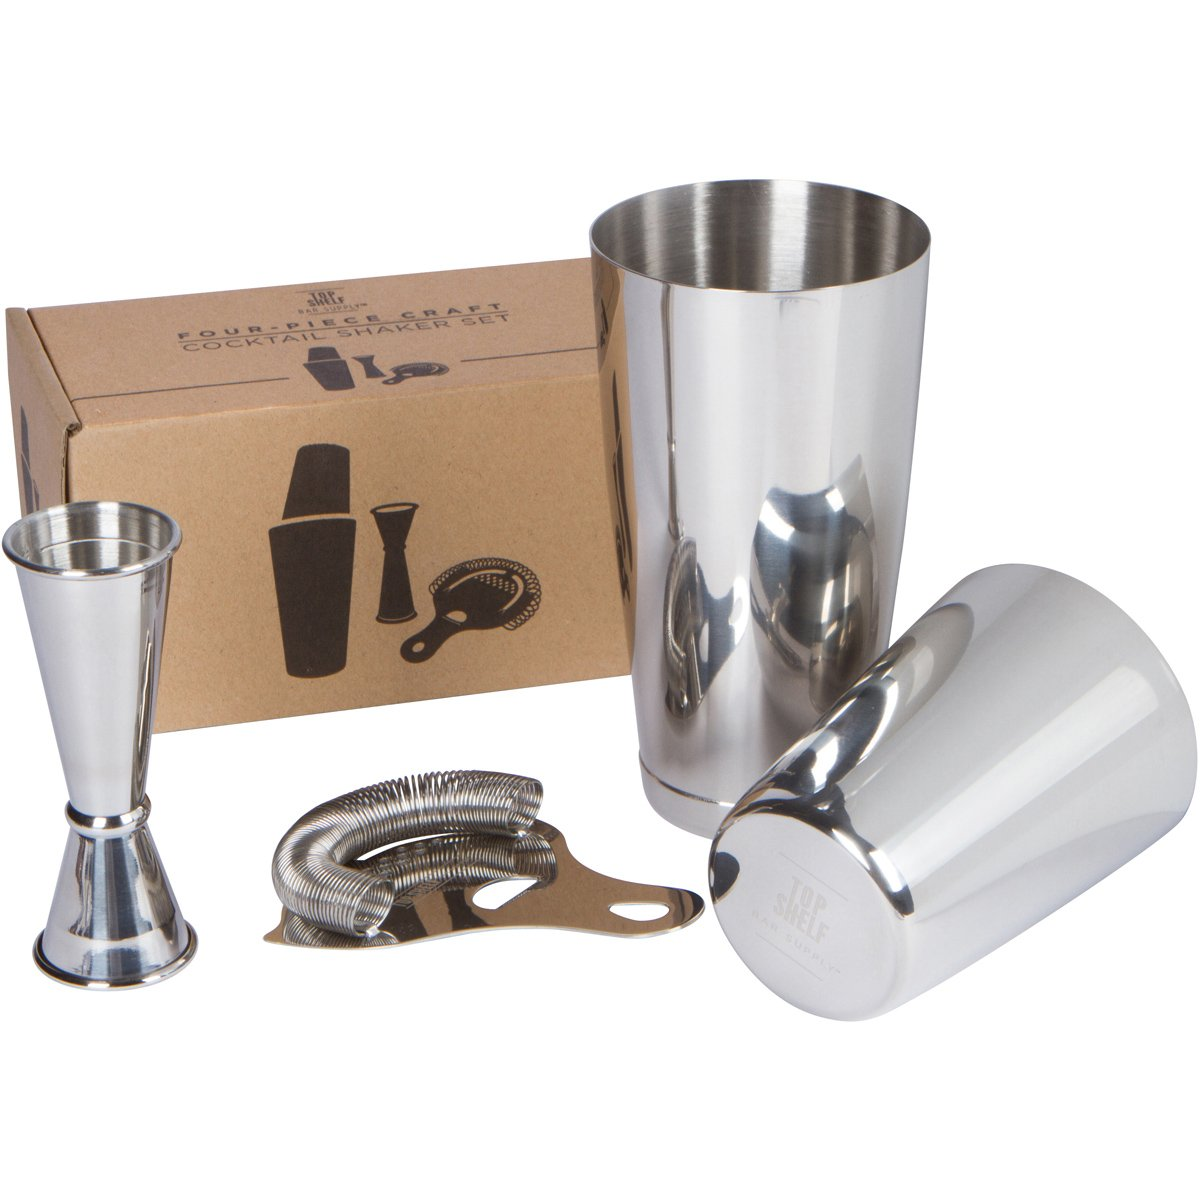 Boston Shaker Set: Professional two-piece Stainless Steel Cocktail Shaker set with Hawthorne Strainer and Japanese Jigger